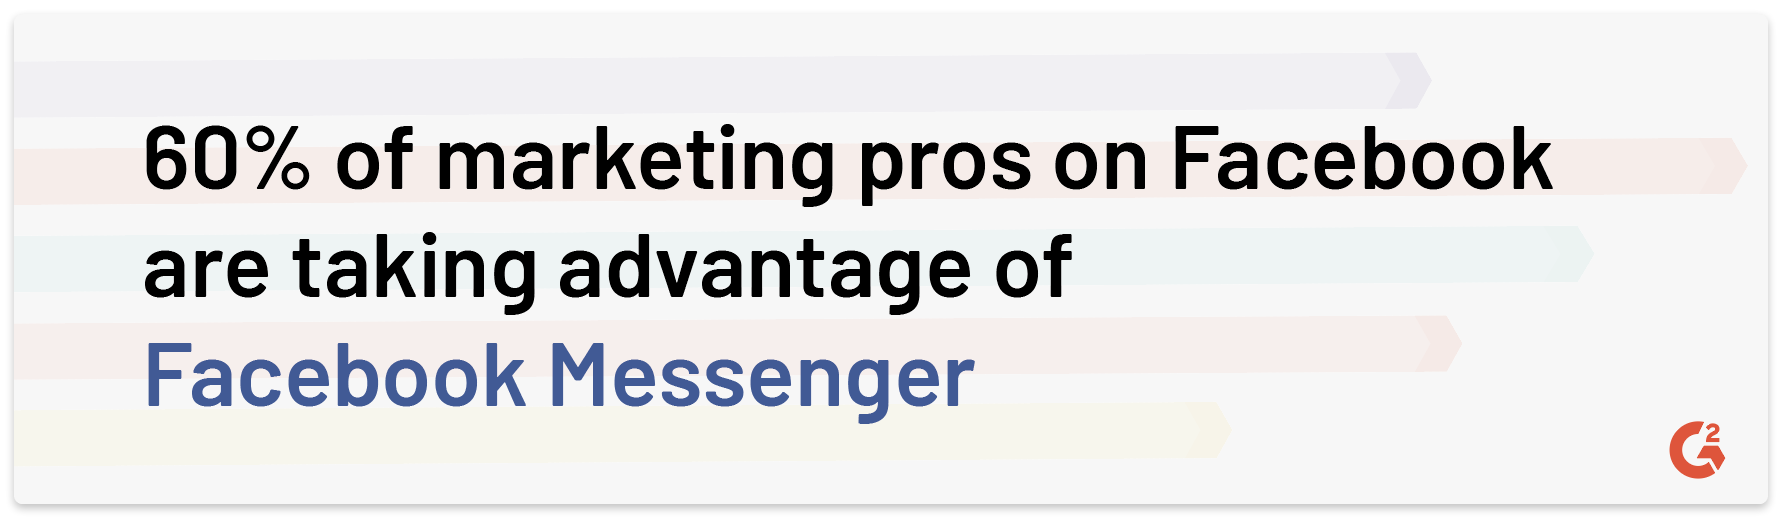 percentage of marketers that use facebook messenger